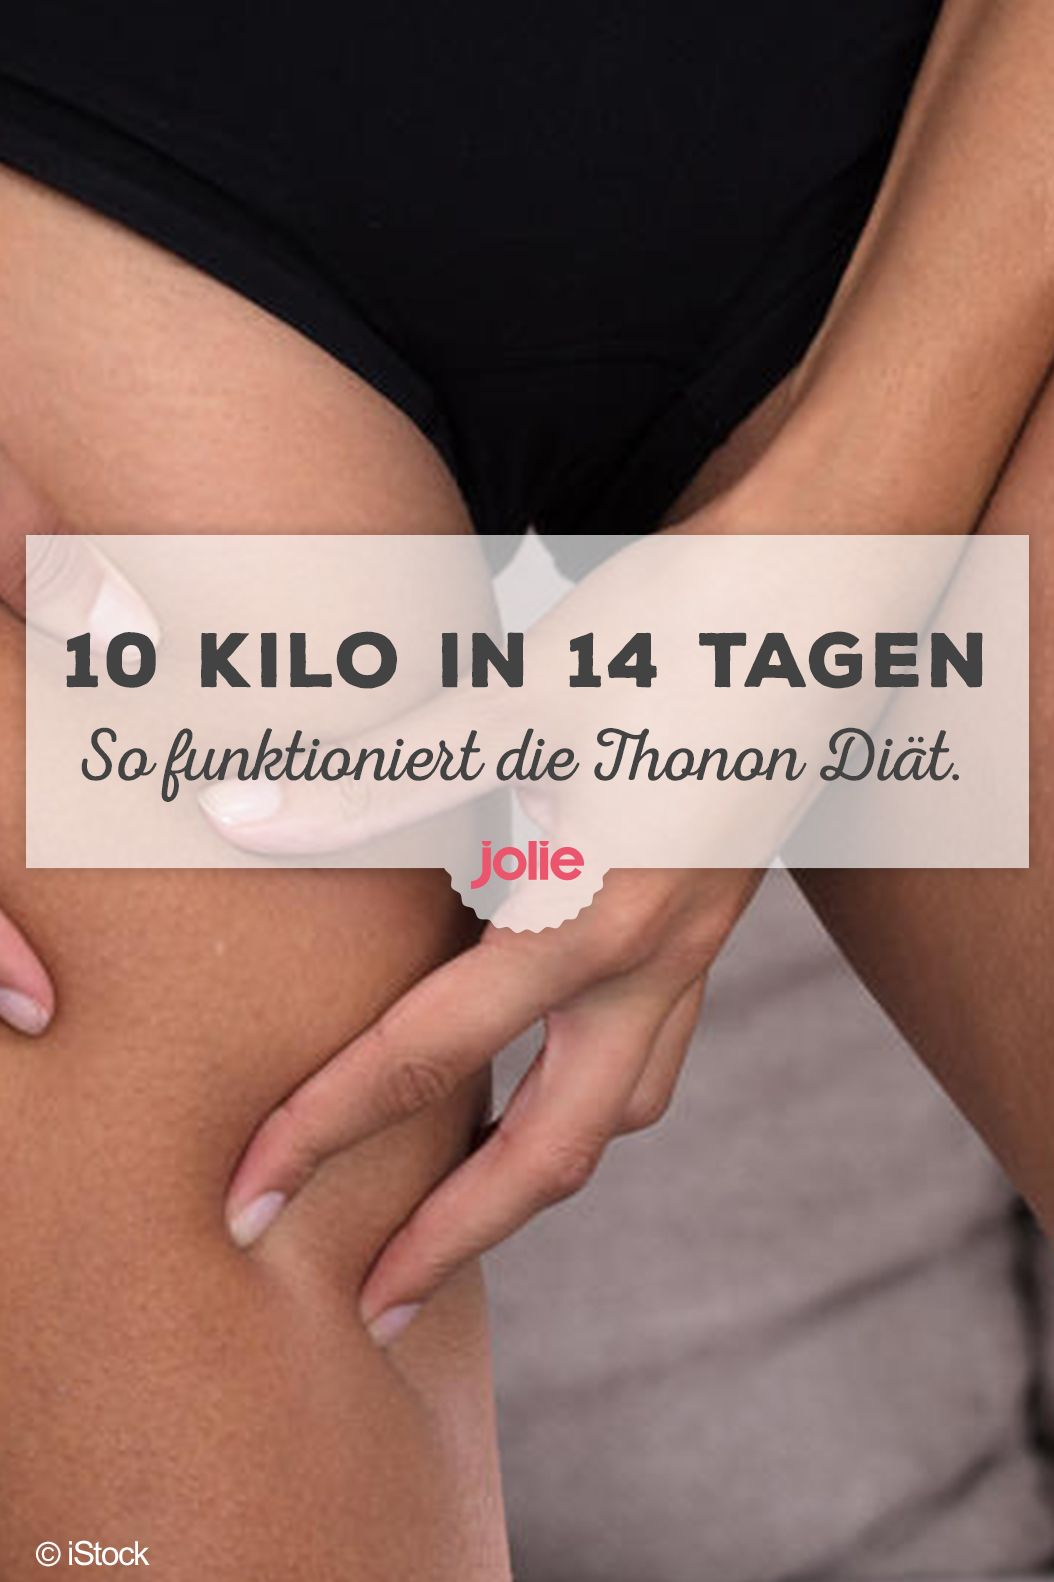 Photo of Thonon Diet: Lose 10 pounds in 14 days